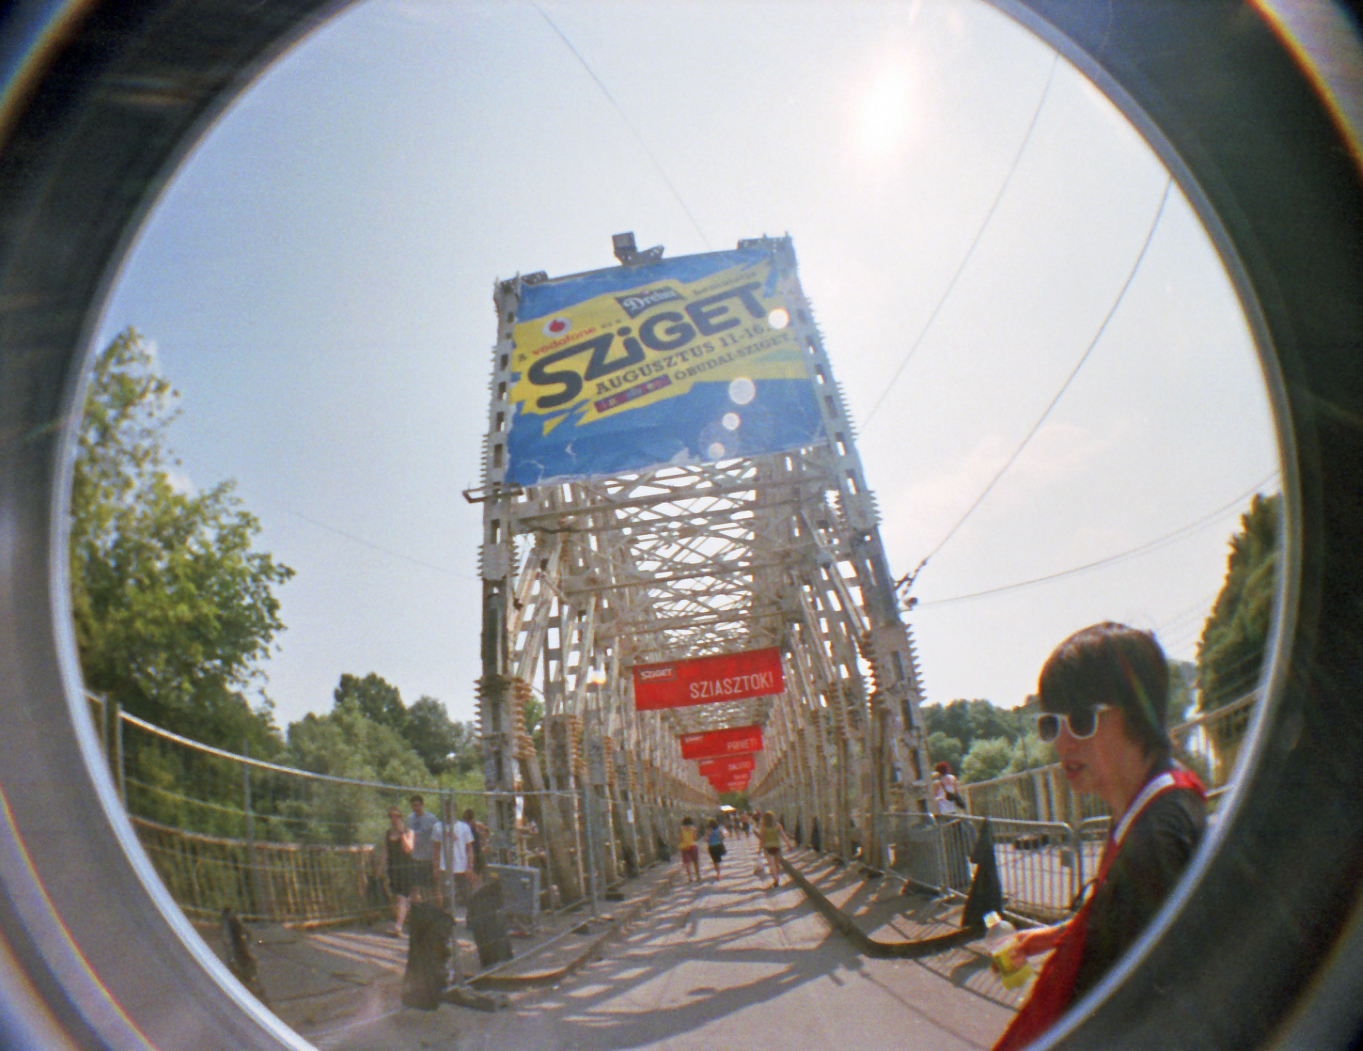 Gate to Sziget